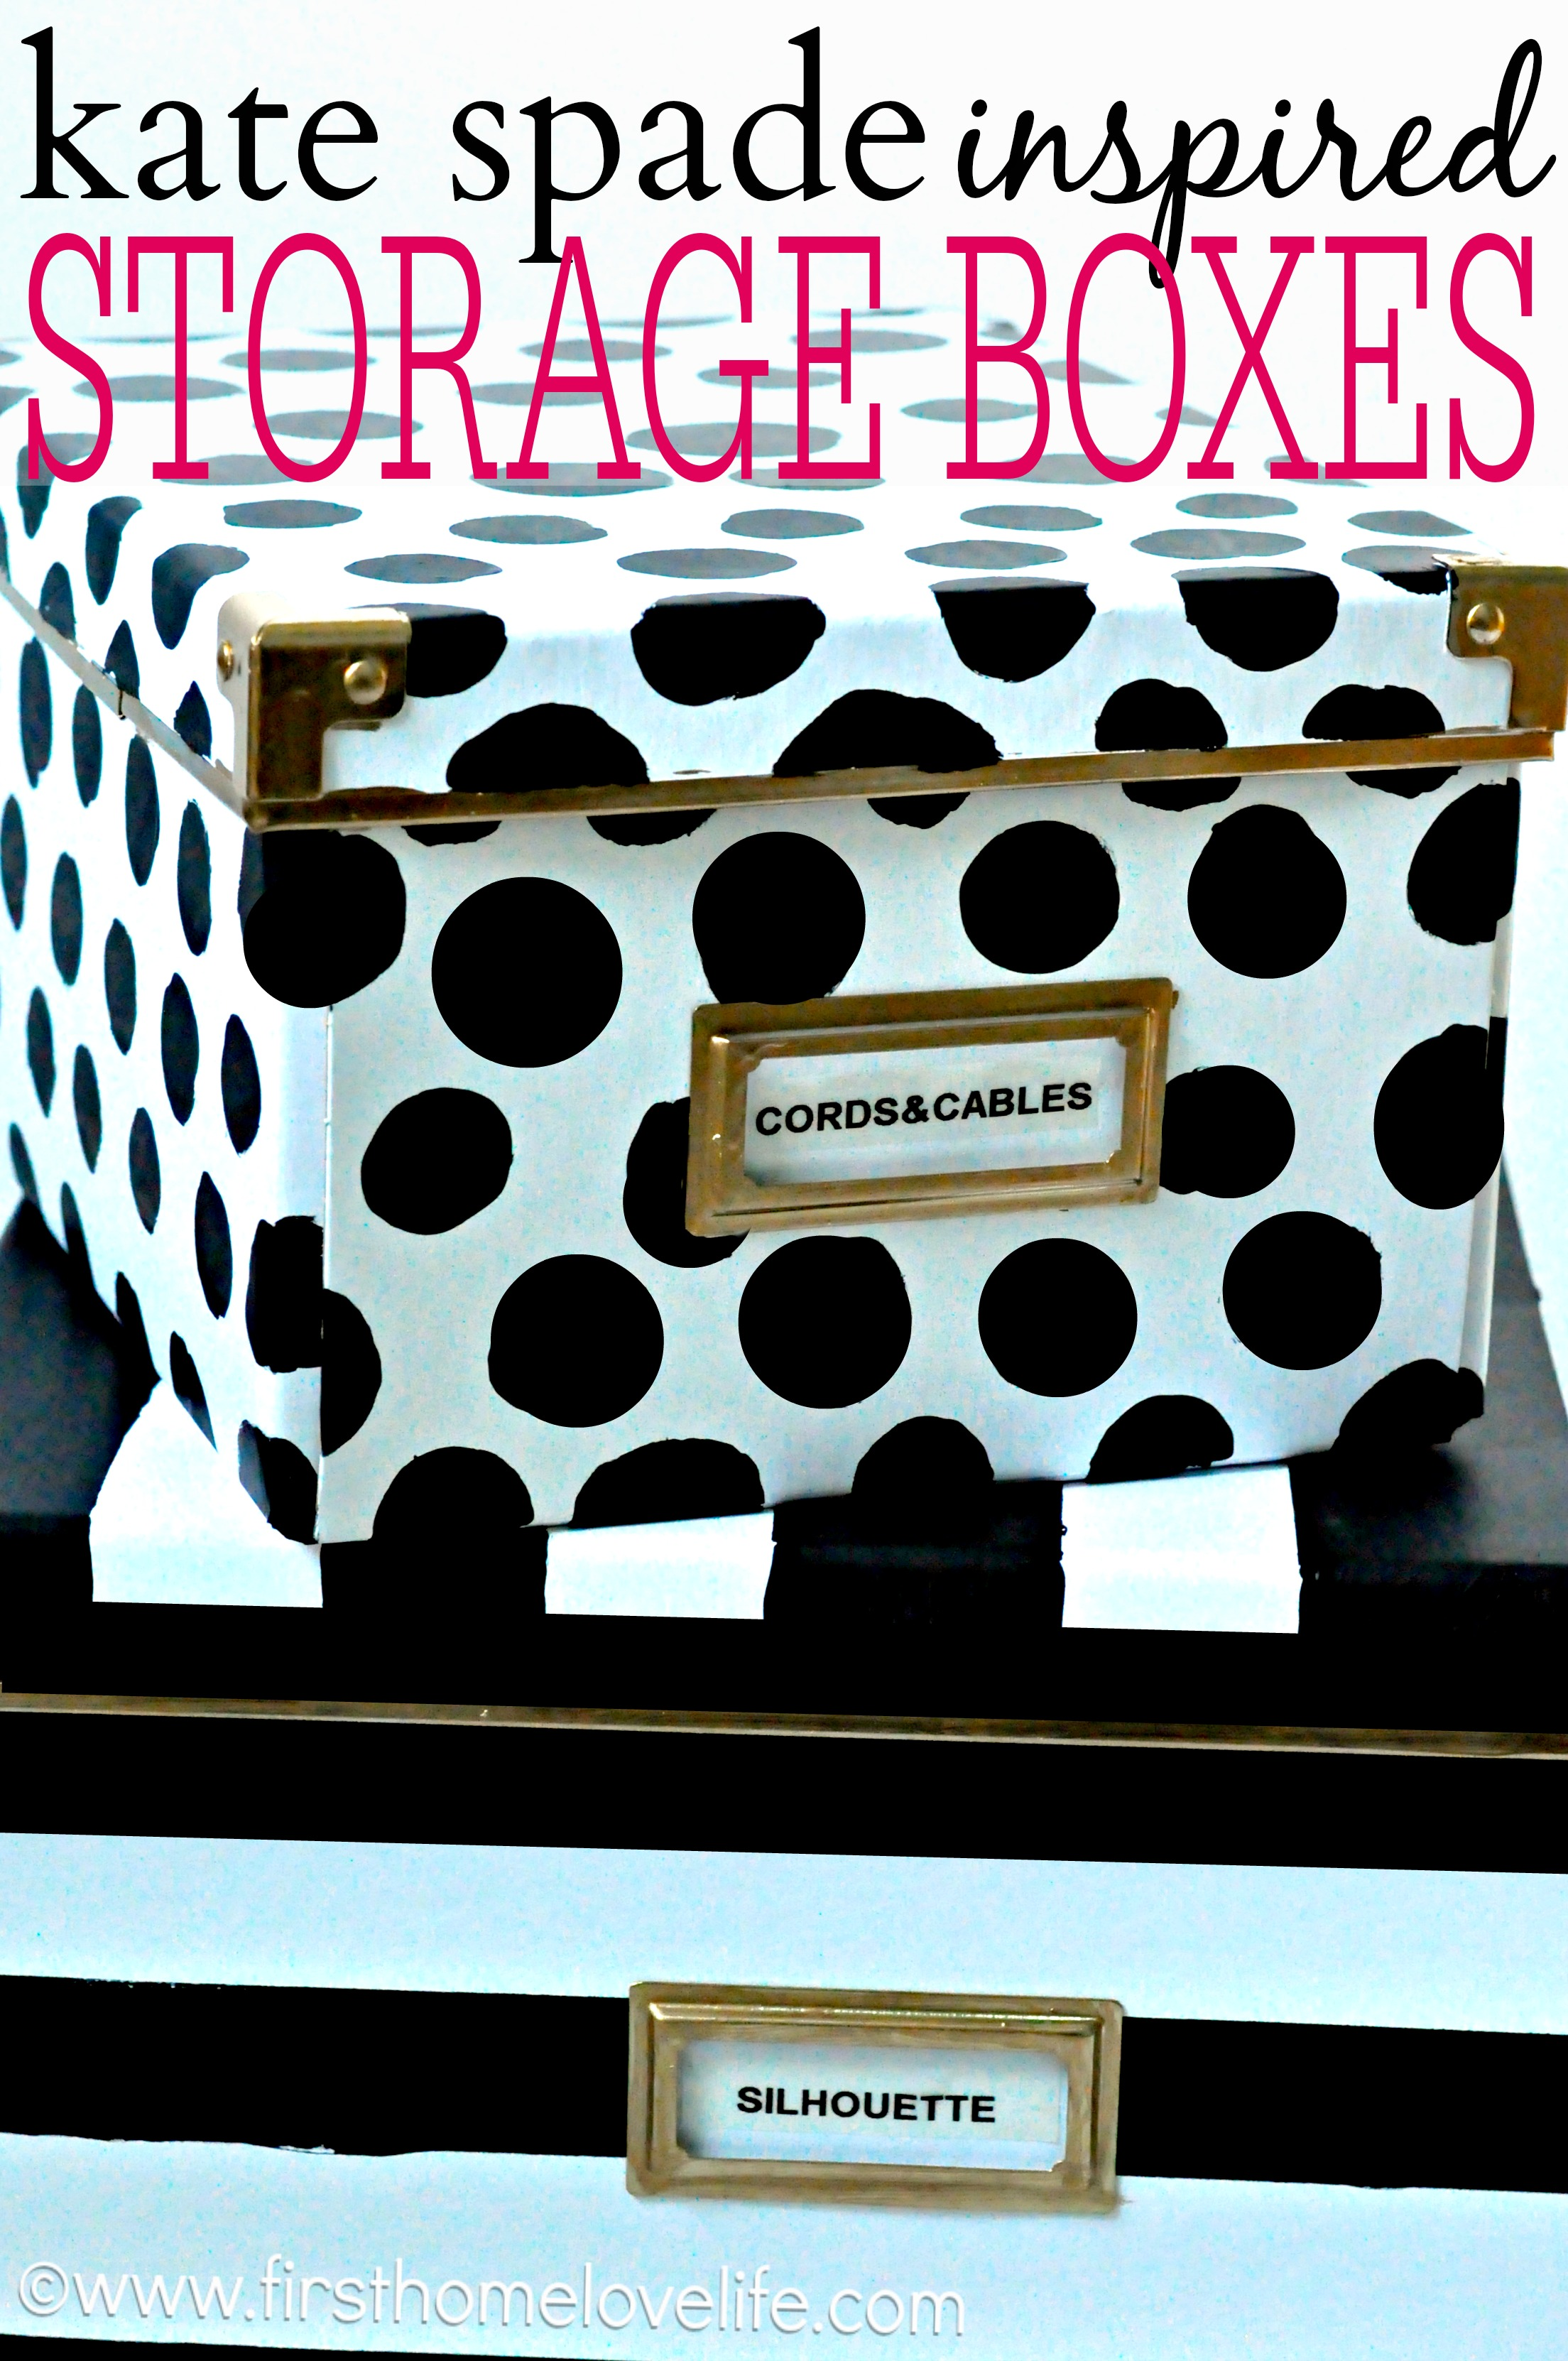 Charmant Kate Spade Inspired Storage Boxes To Hide Away All Of Those Loose Office  Items!